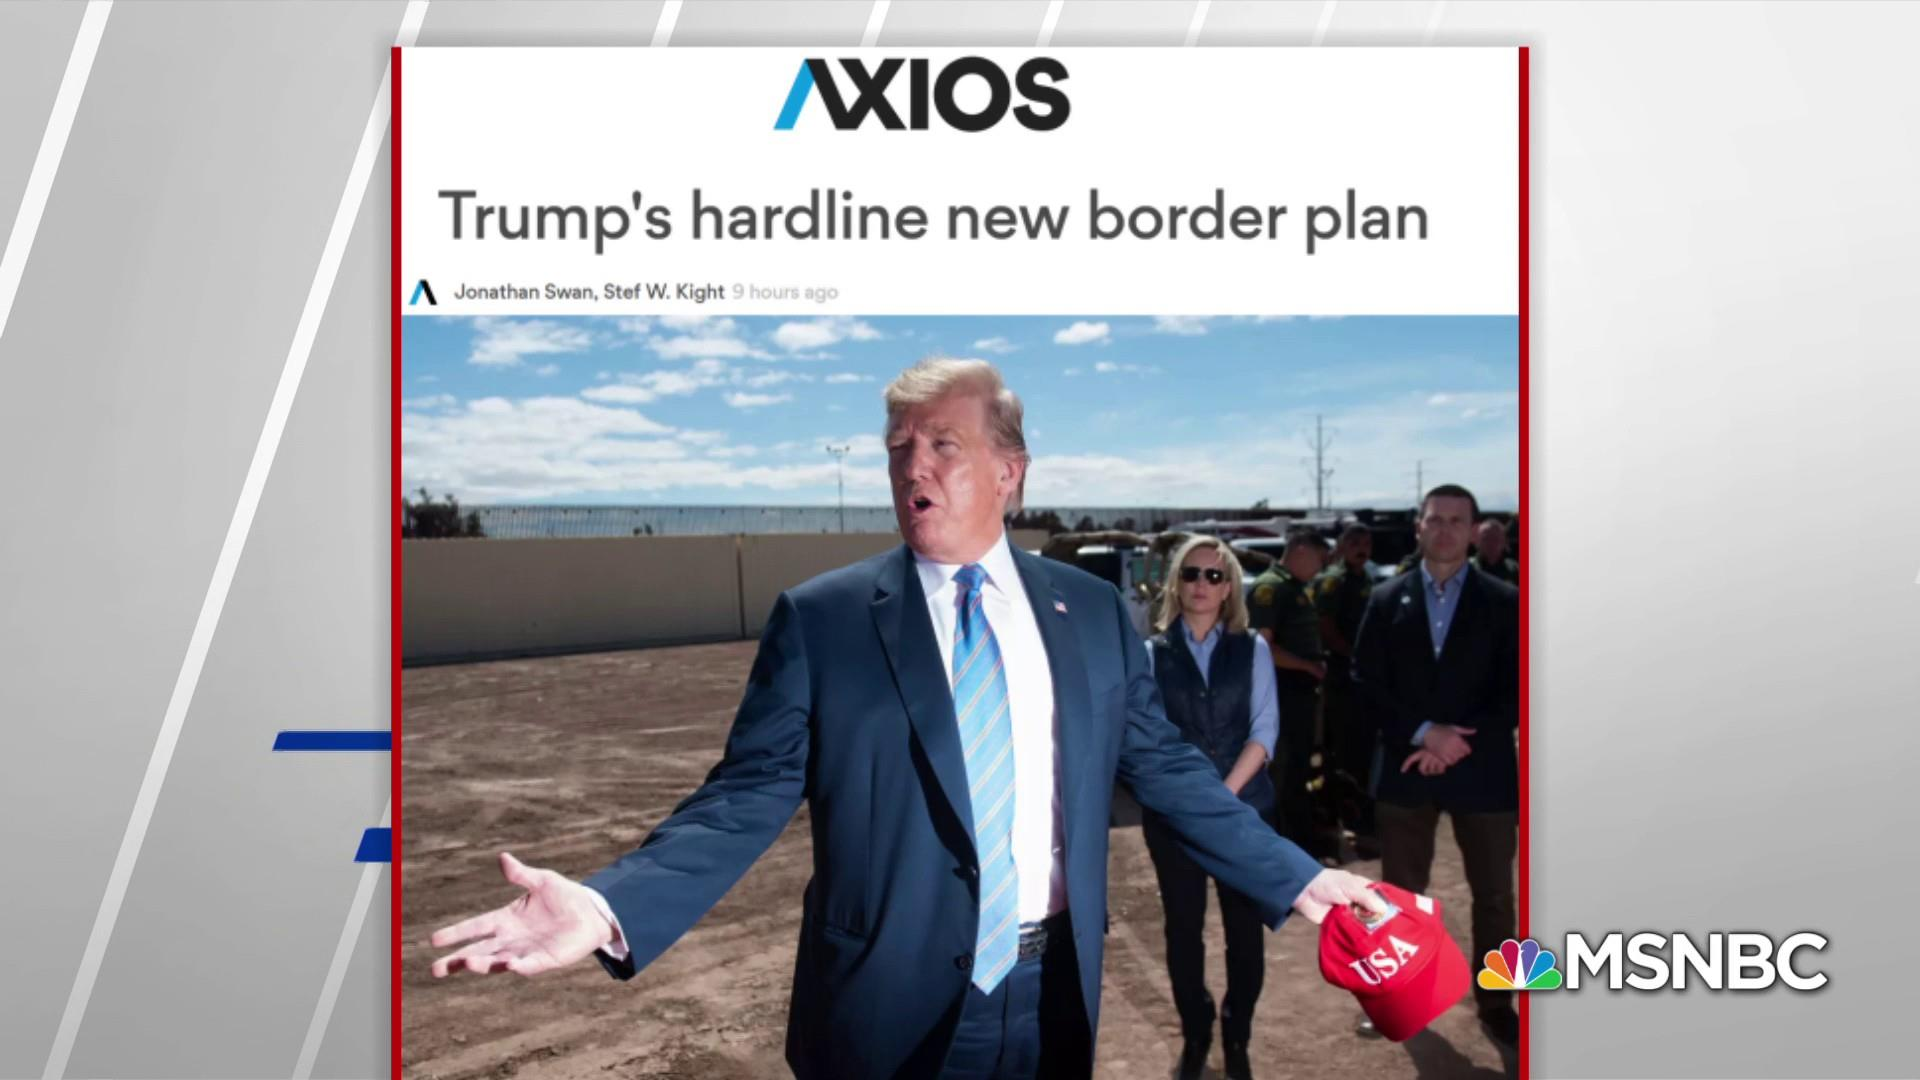 Axios: Trump, Miller in favor of reinstating family separation policy